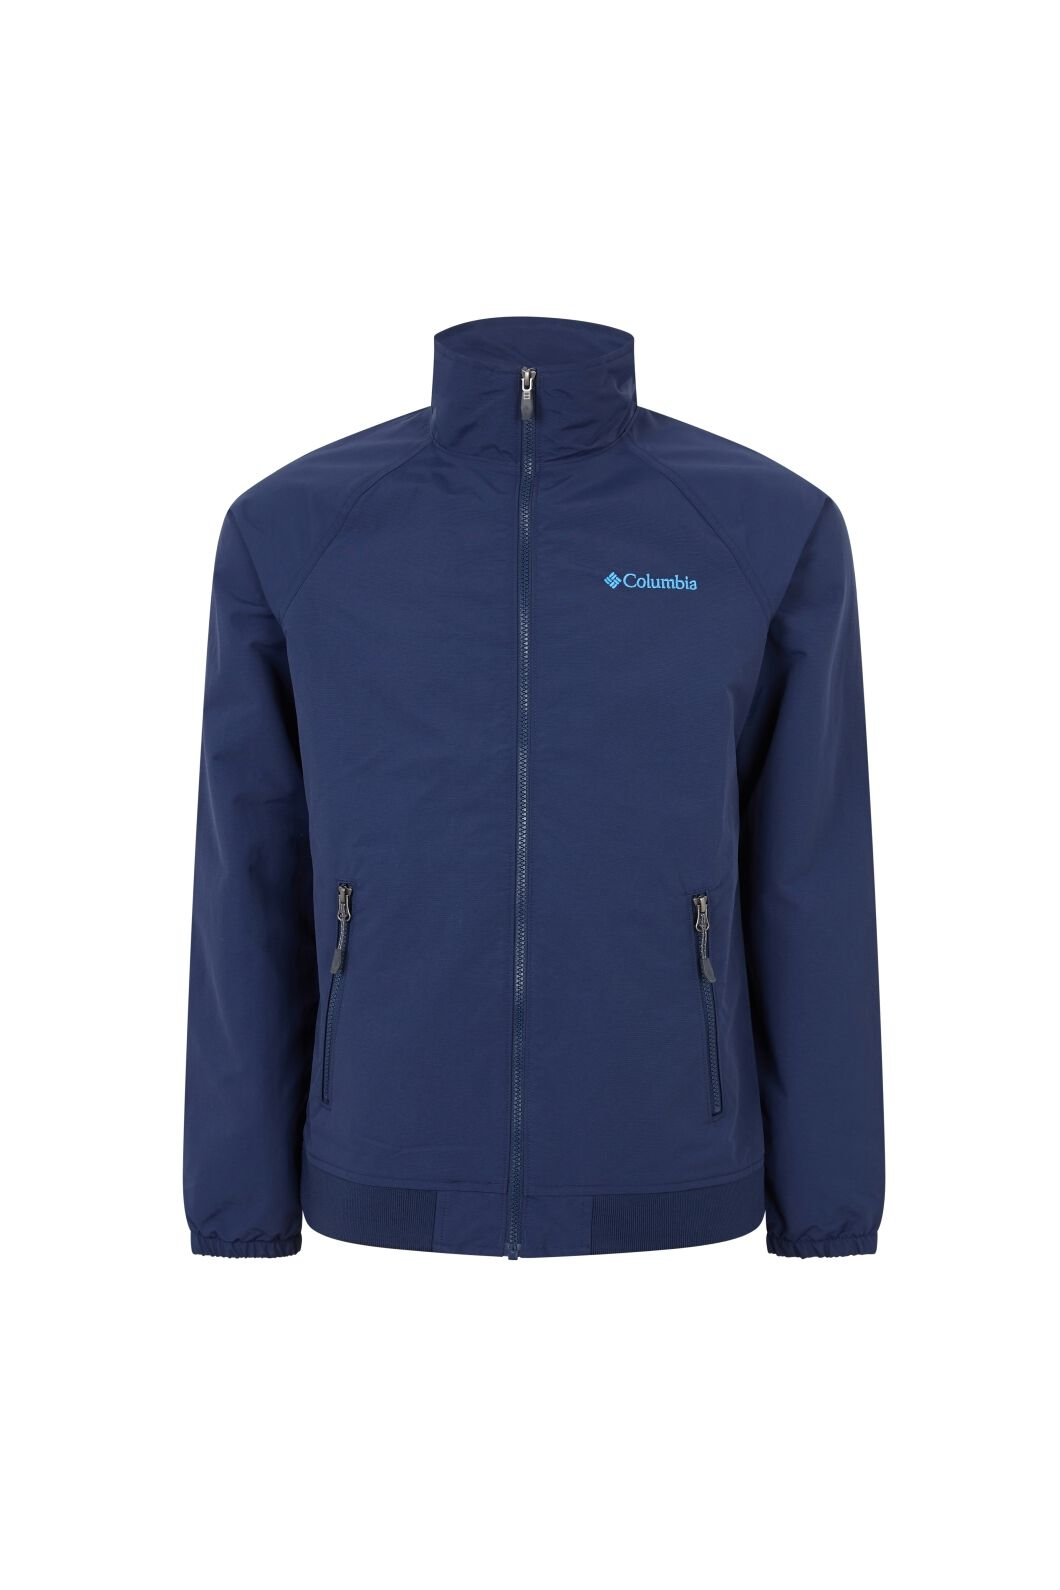 Columbia Men's Falmouth Jacket, COLLEGIATE NAVY, hi-res